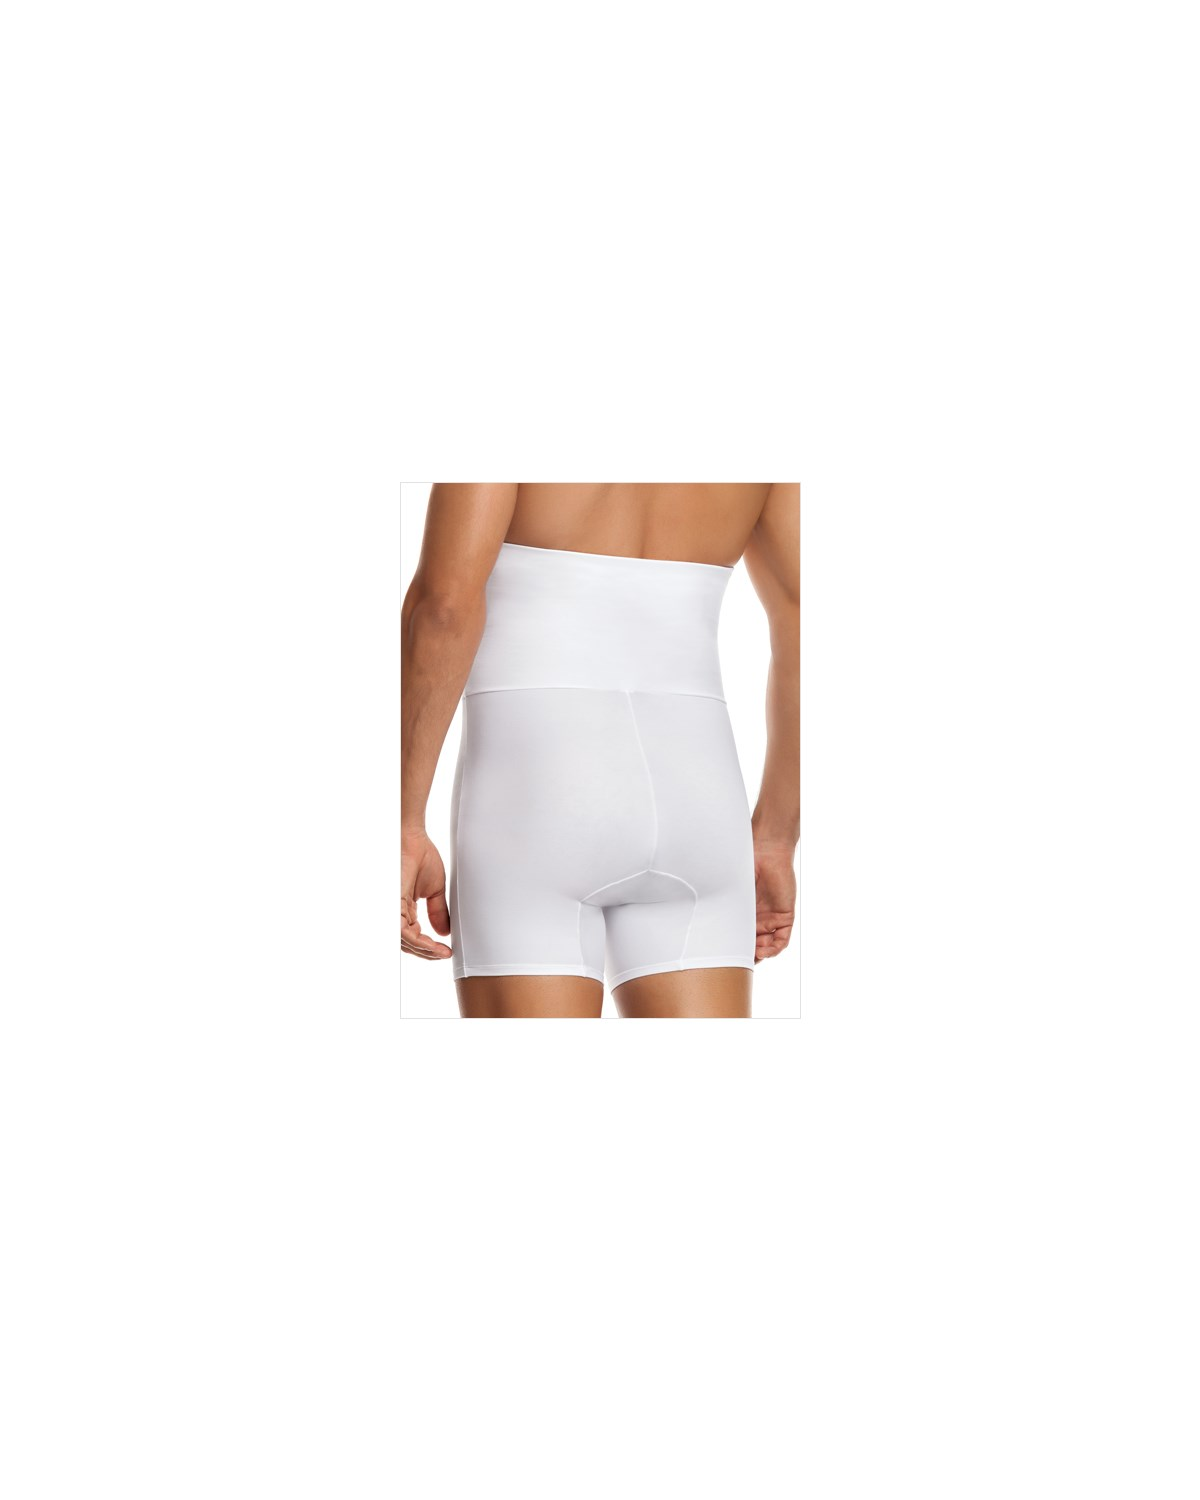 leo high waist stomach shaper with boxer brief-000- White-MainImage